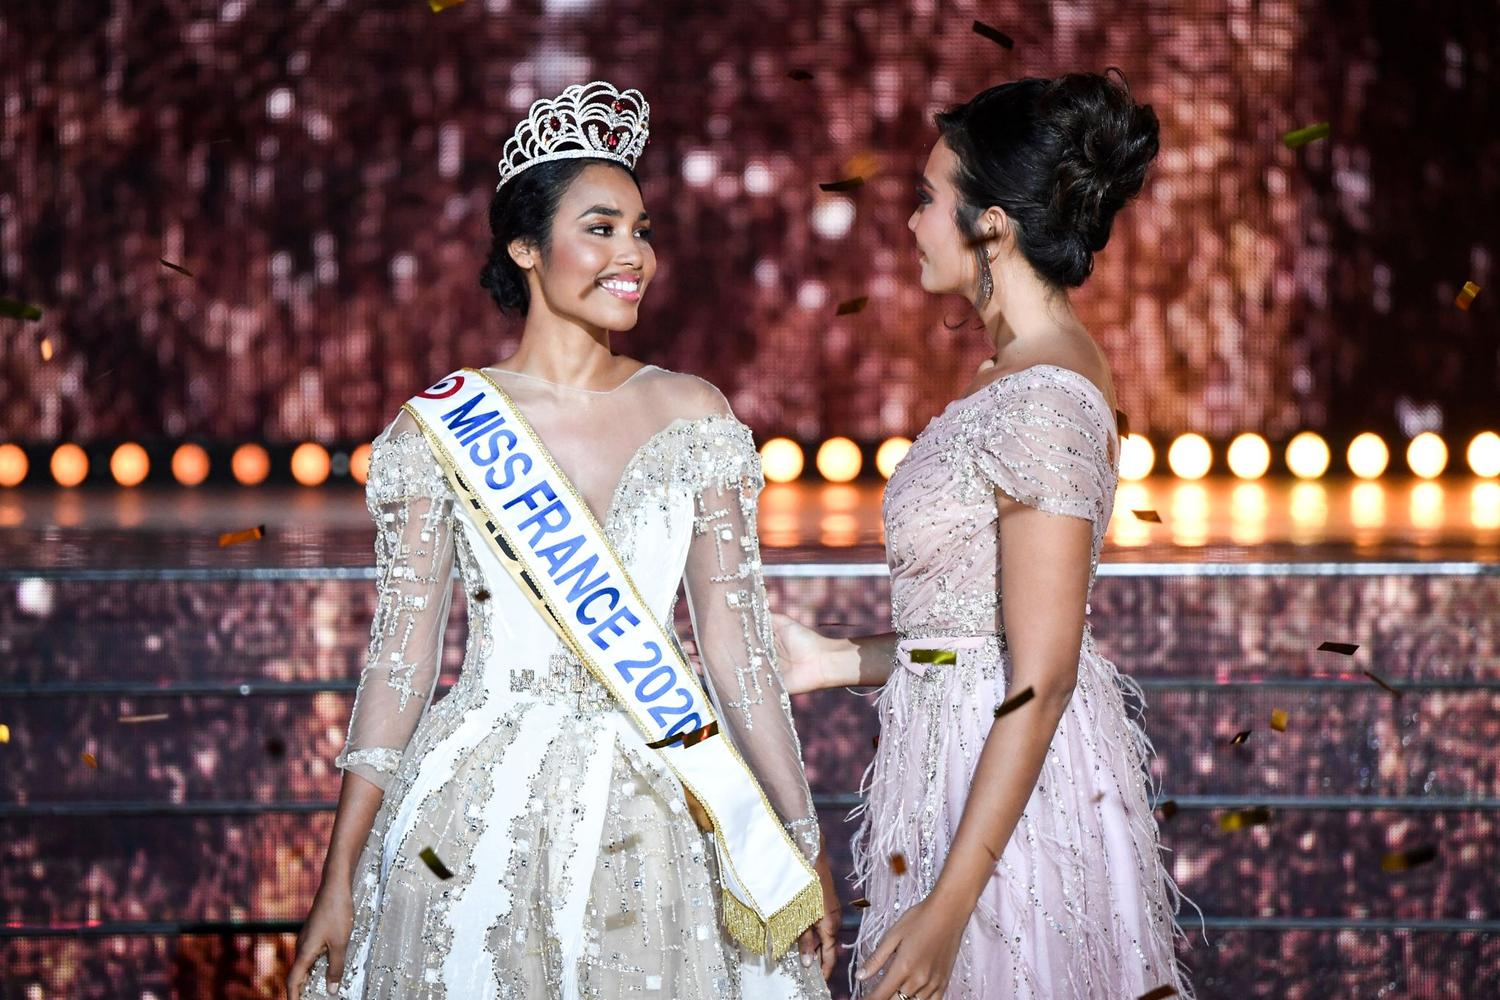 Clemence Botino Crowned Miss France 2020